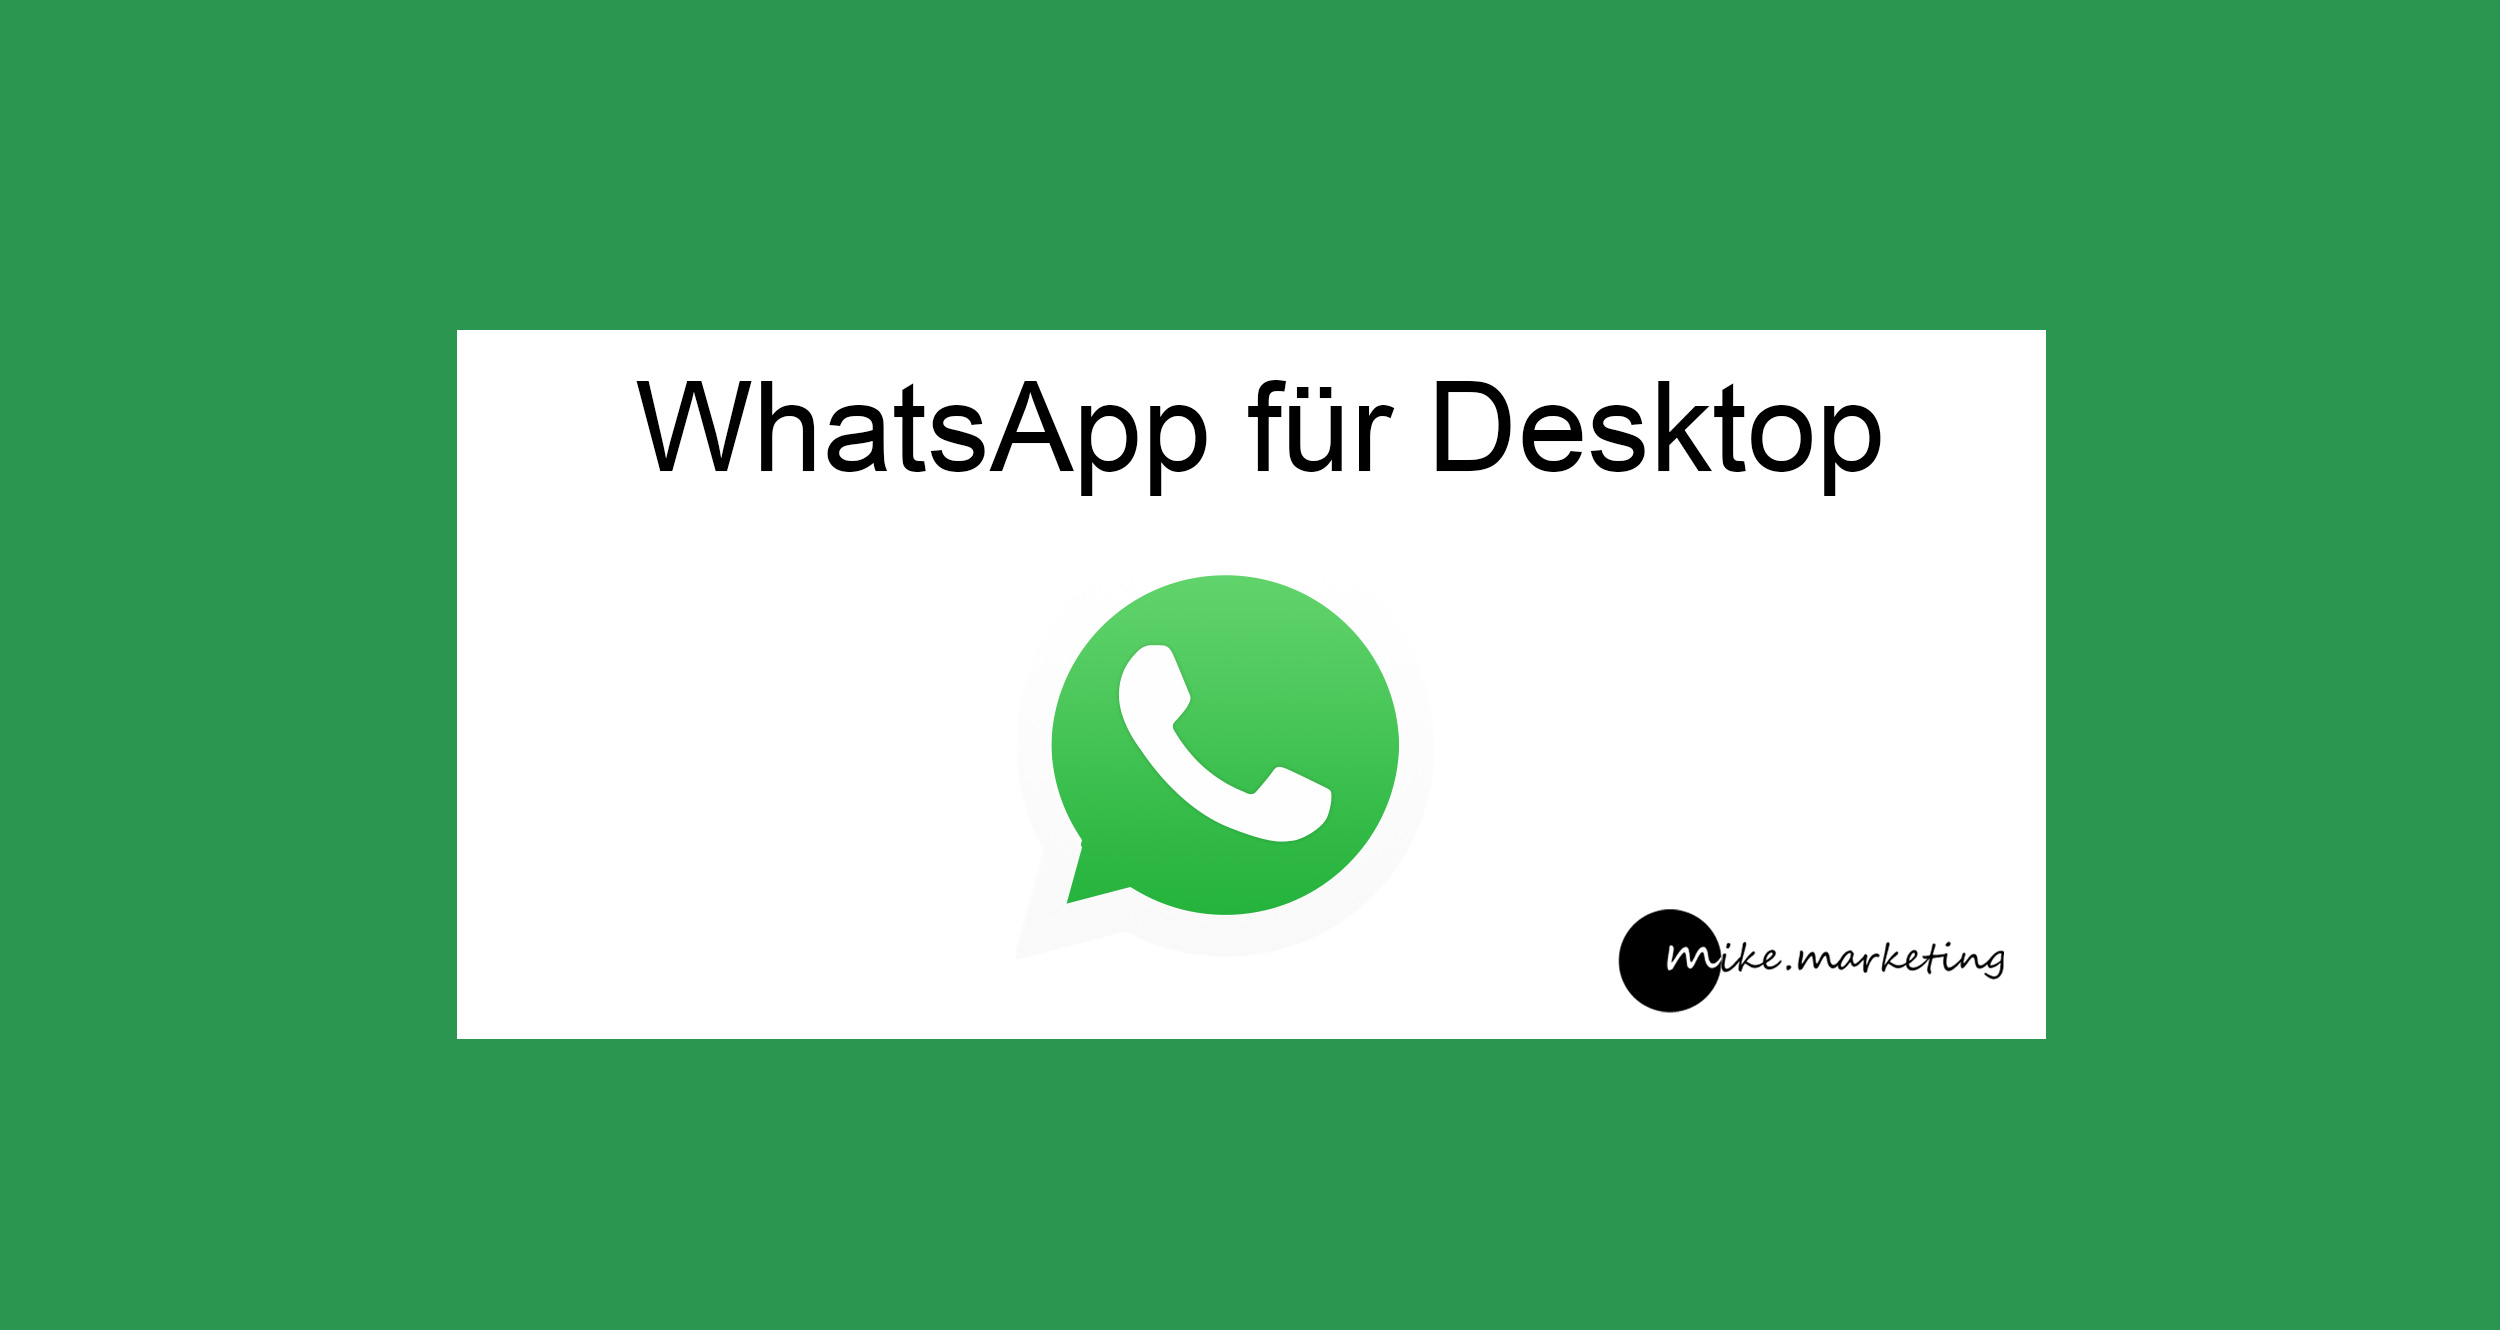 WhatsApp fuer Desktop